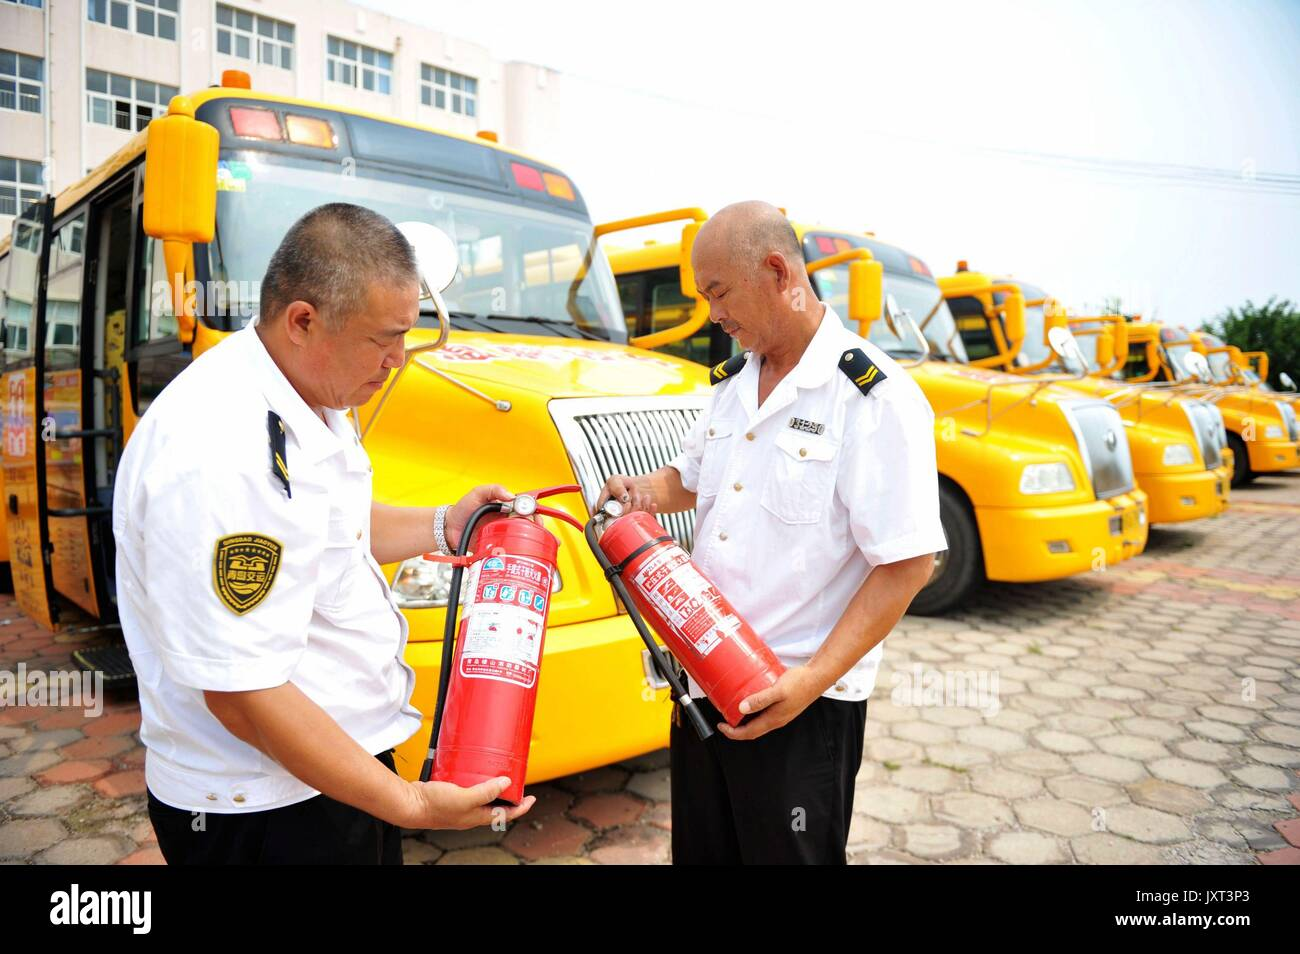 Qingdao, China's Shandong Province. 17th Aug, 2017. Staff check extinguishers used on school buses at a school bus Stock Photo